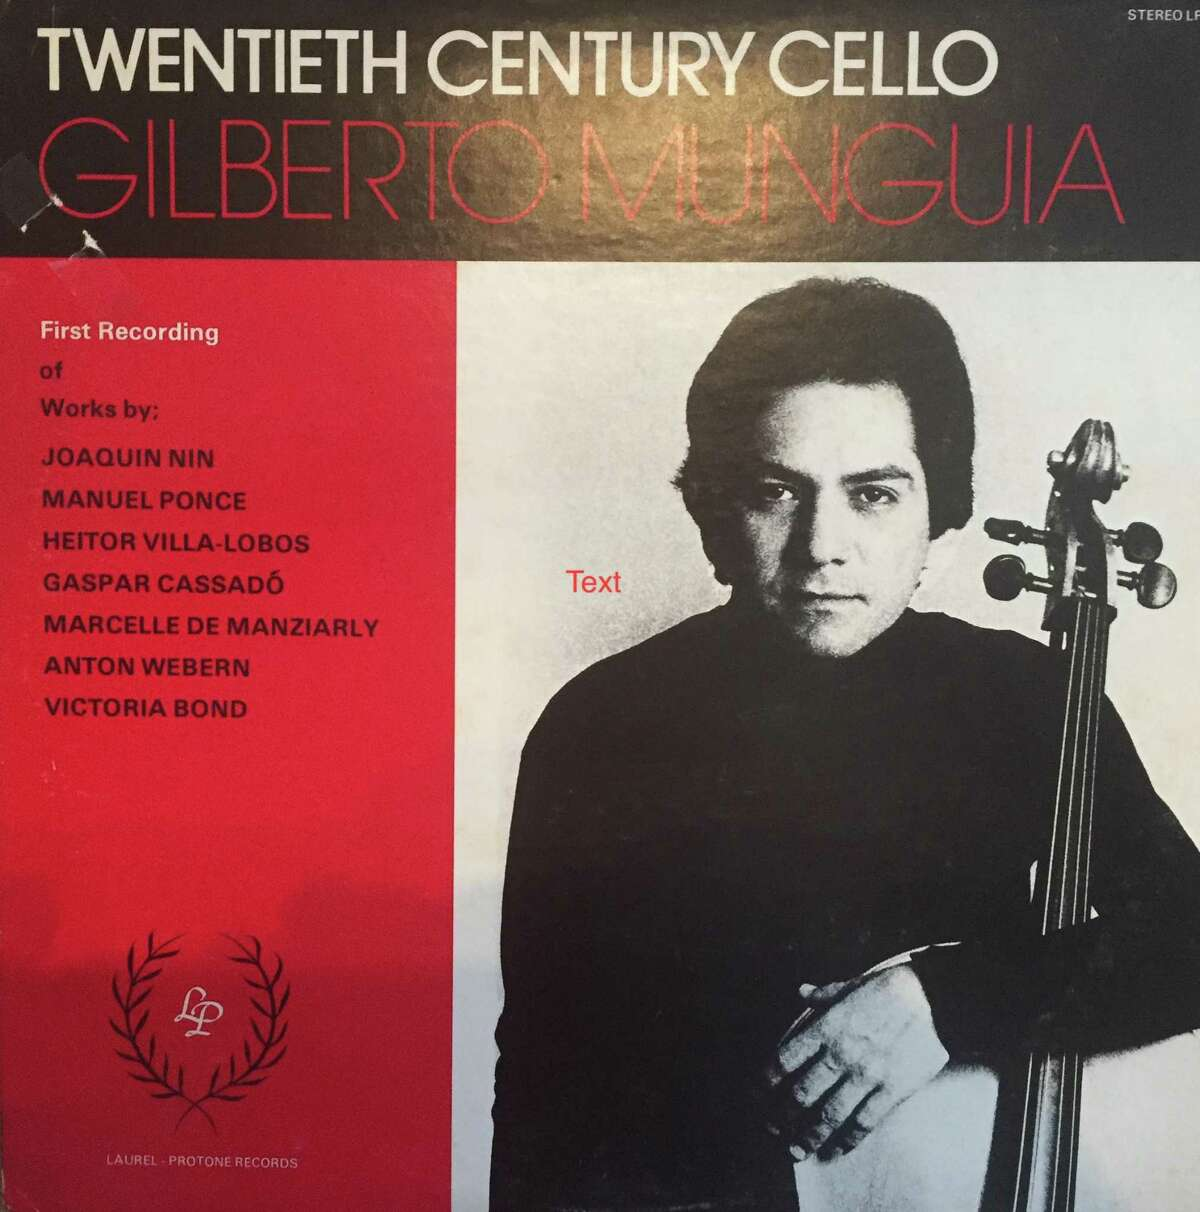 """Cellist Gilbert Munguia, who performed several times in San Antonio, recorded at least one album, """"Twentieth Century Cello,"""" featuring works by mostly Hispanic 20th-century composers. Originally from Kingsville, Munguia was an affiliate artist at Trinity University in 1977."""